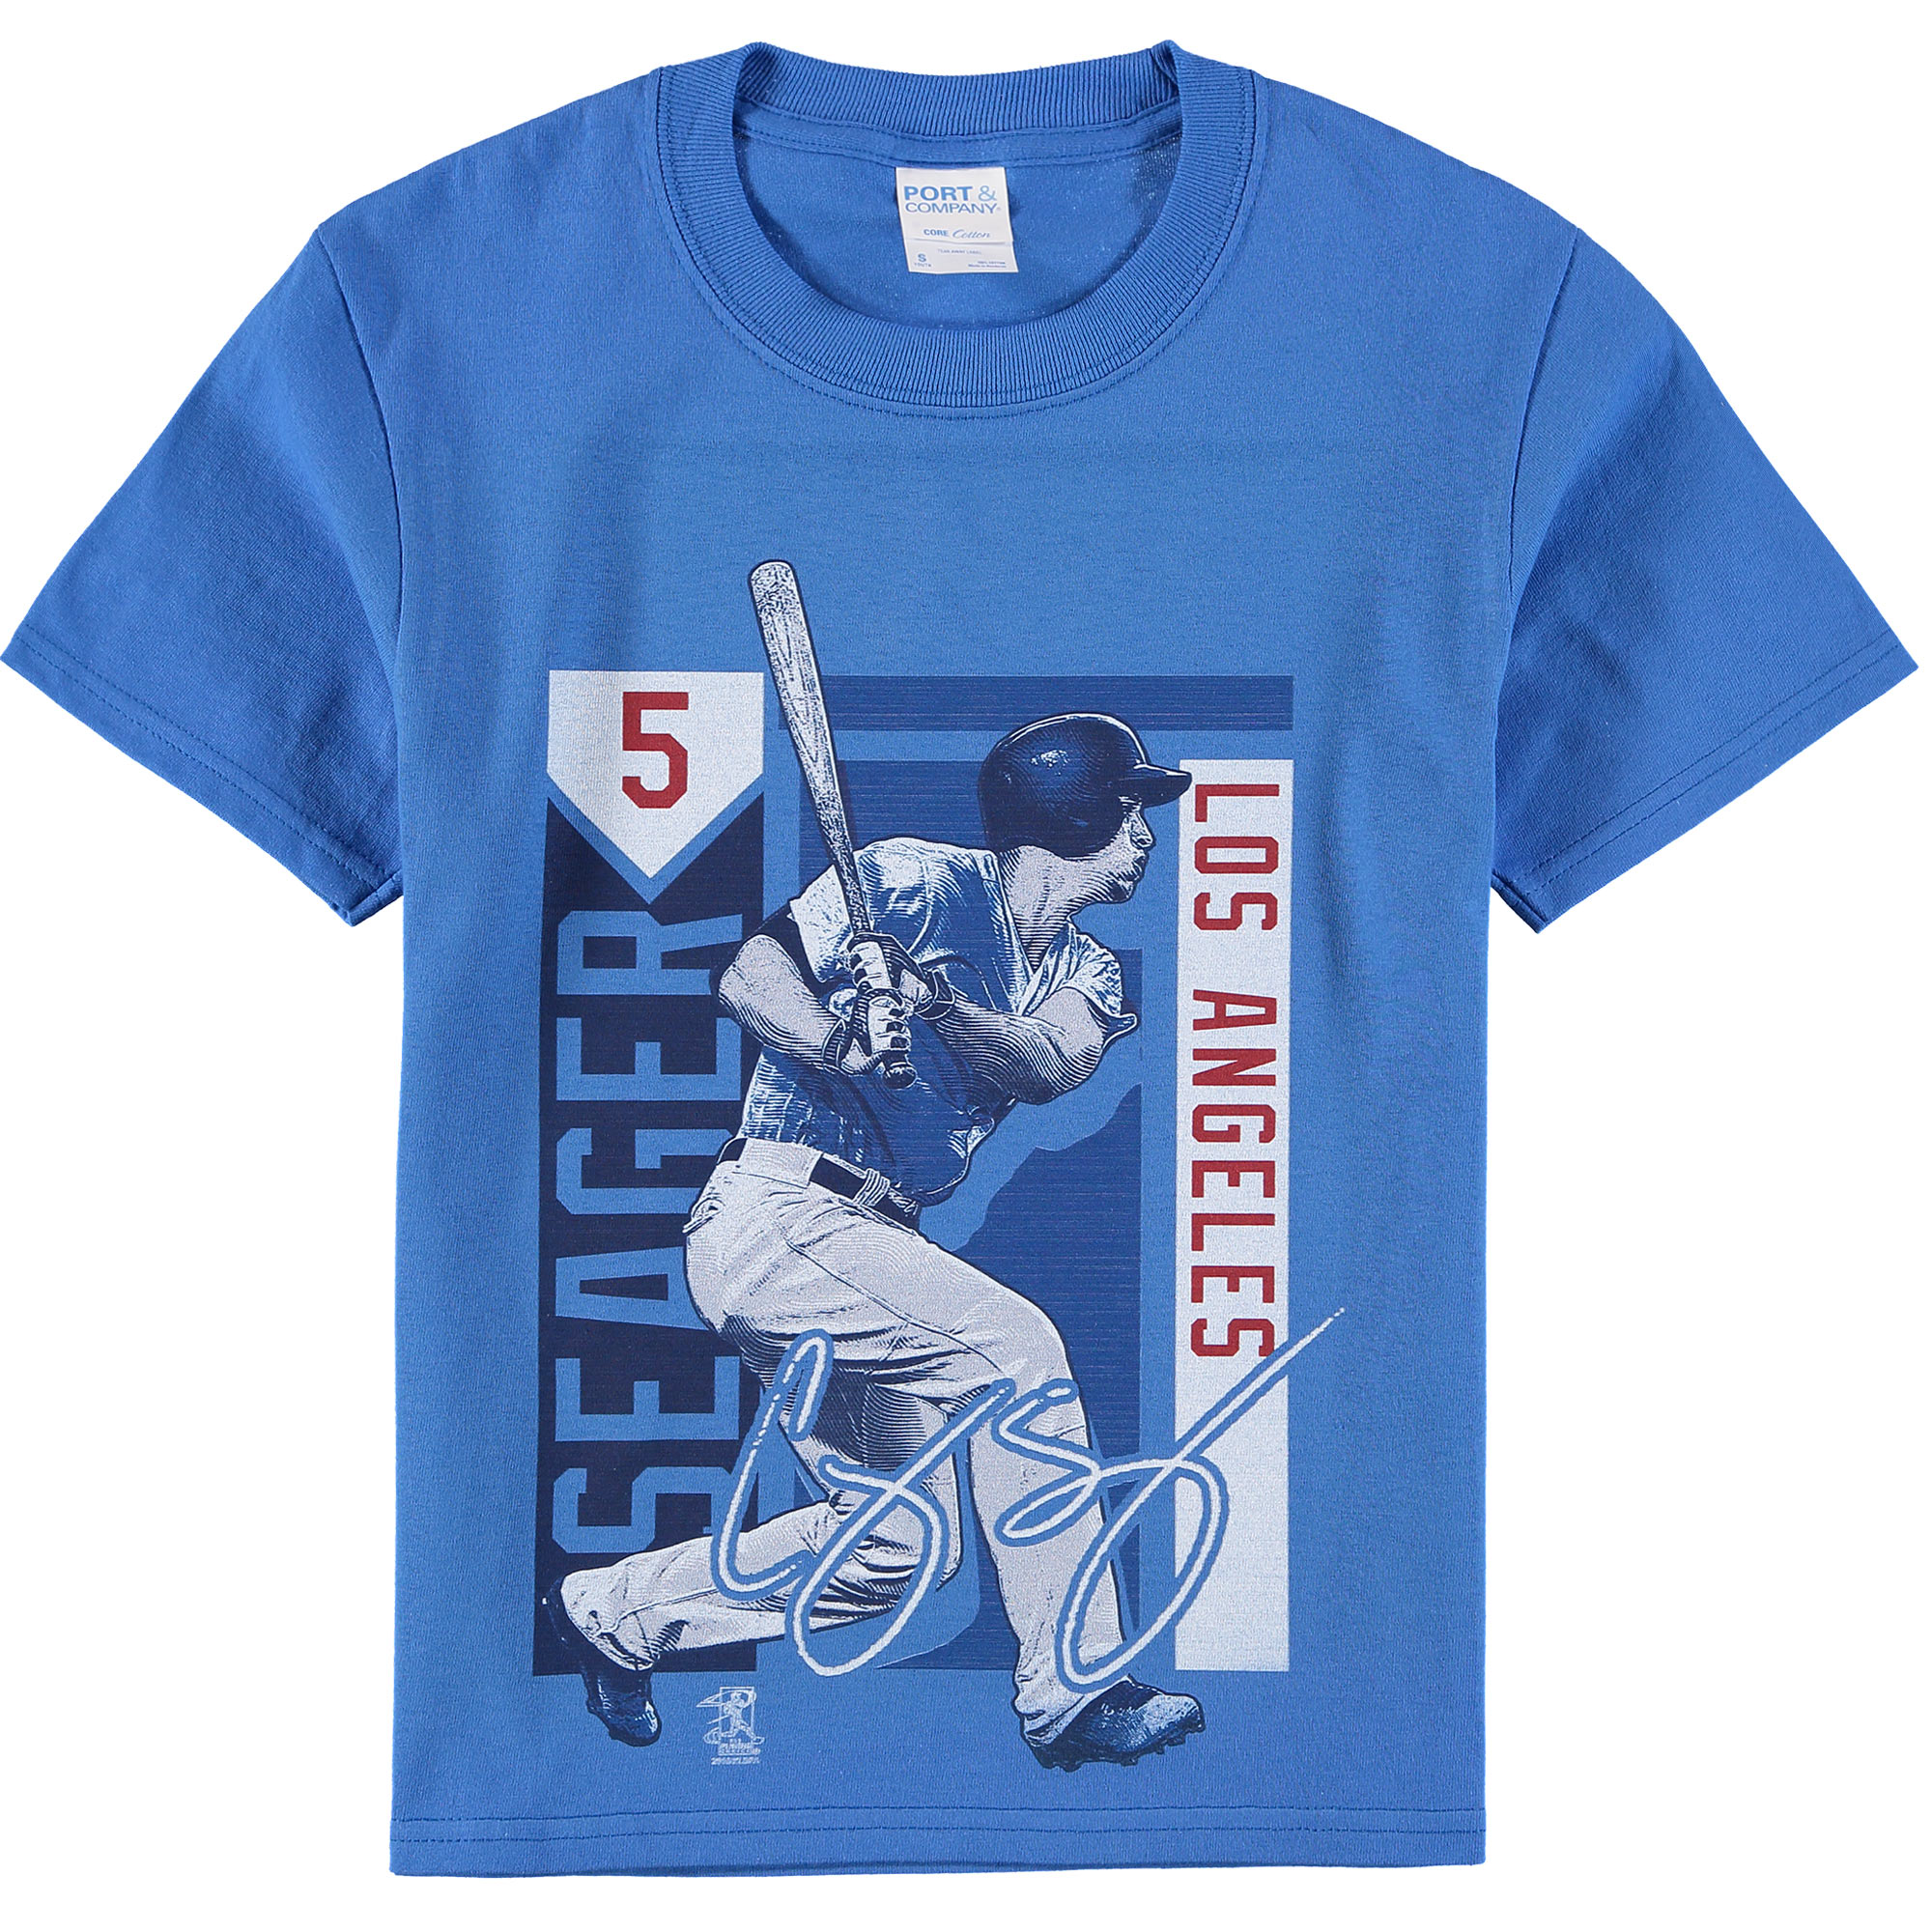 Corey Seager Los Angeles Dodgers Youth Color Block Player Series Graphic T-Shirt - Royal